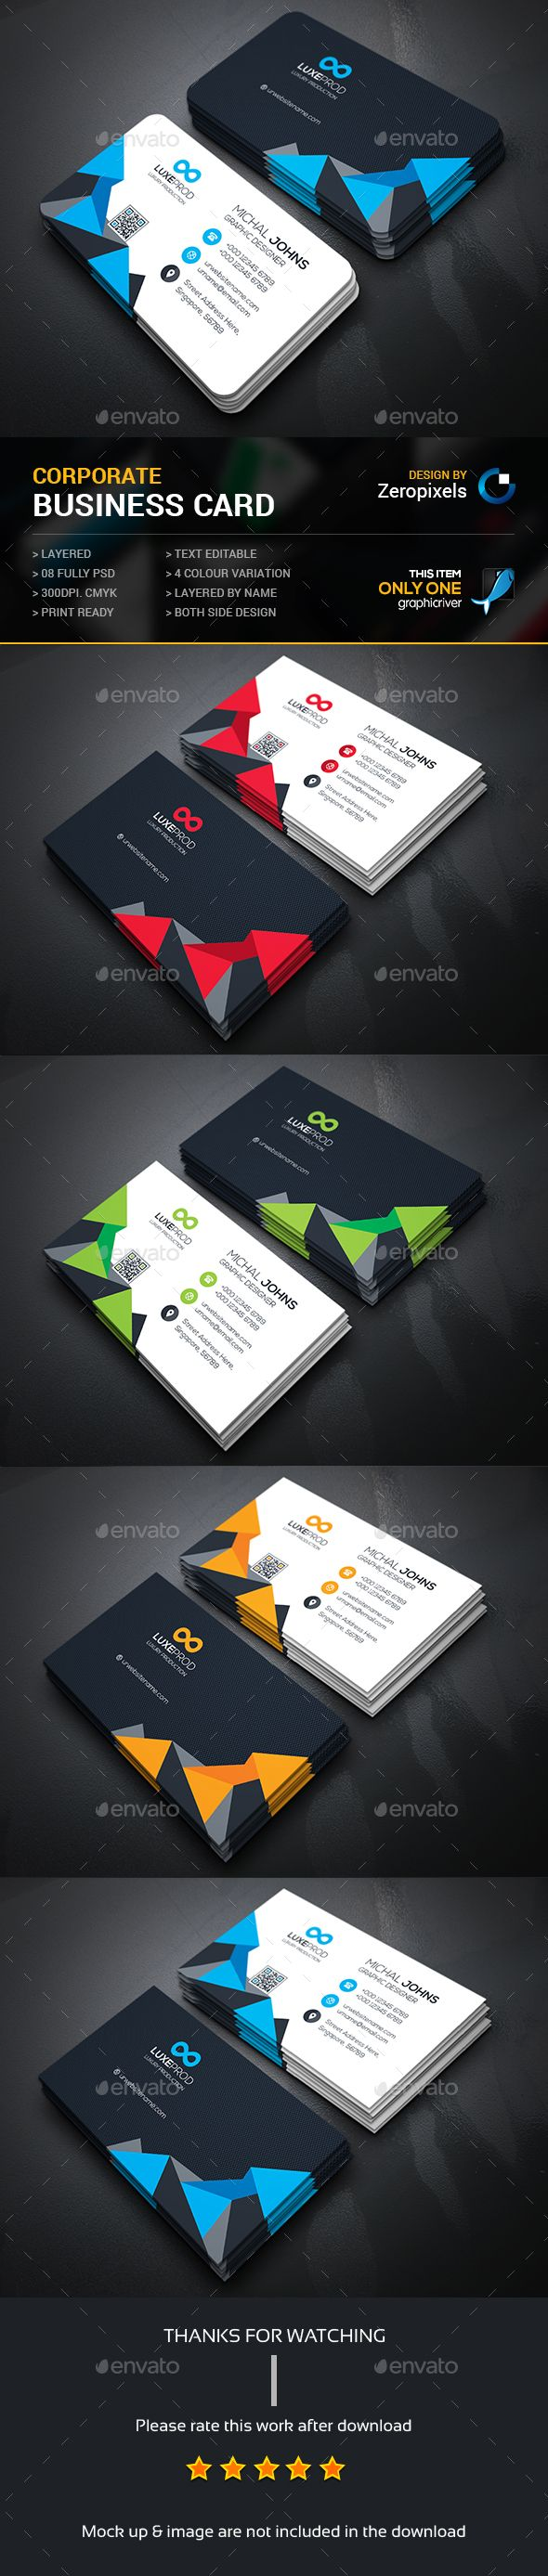 237 best business card design images on pinterest business card buy creative business card by zeropixels on graphicriver features easy customizable and editable business card in with bleed cmyk color design in 300 dpi reheart Image collections